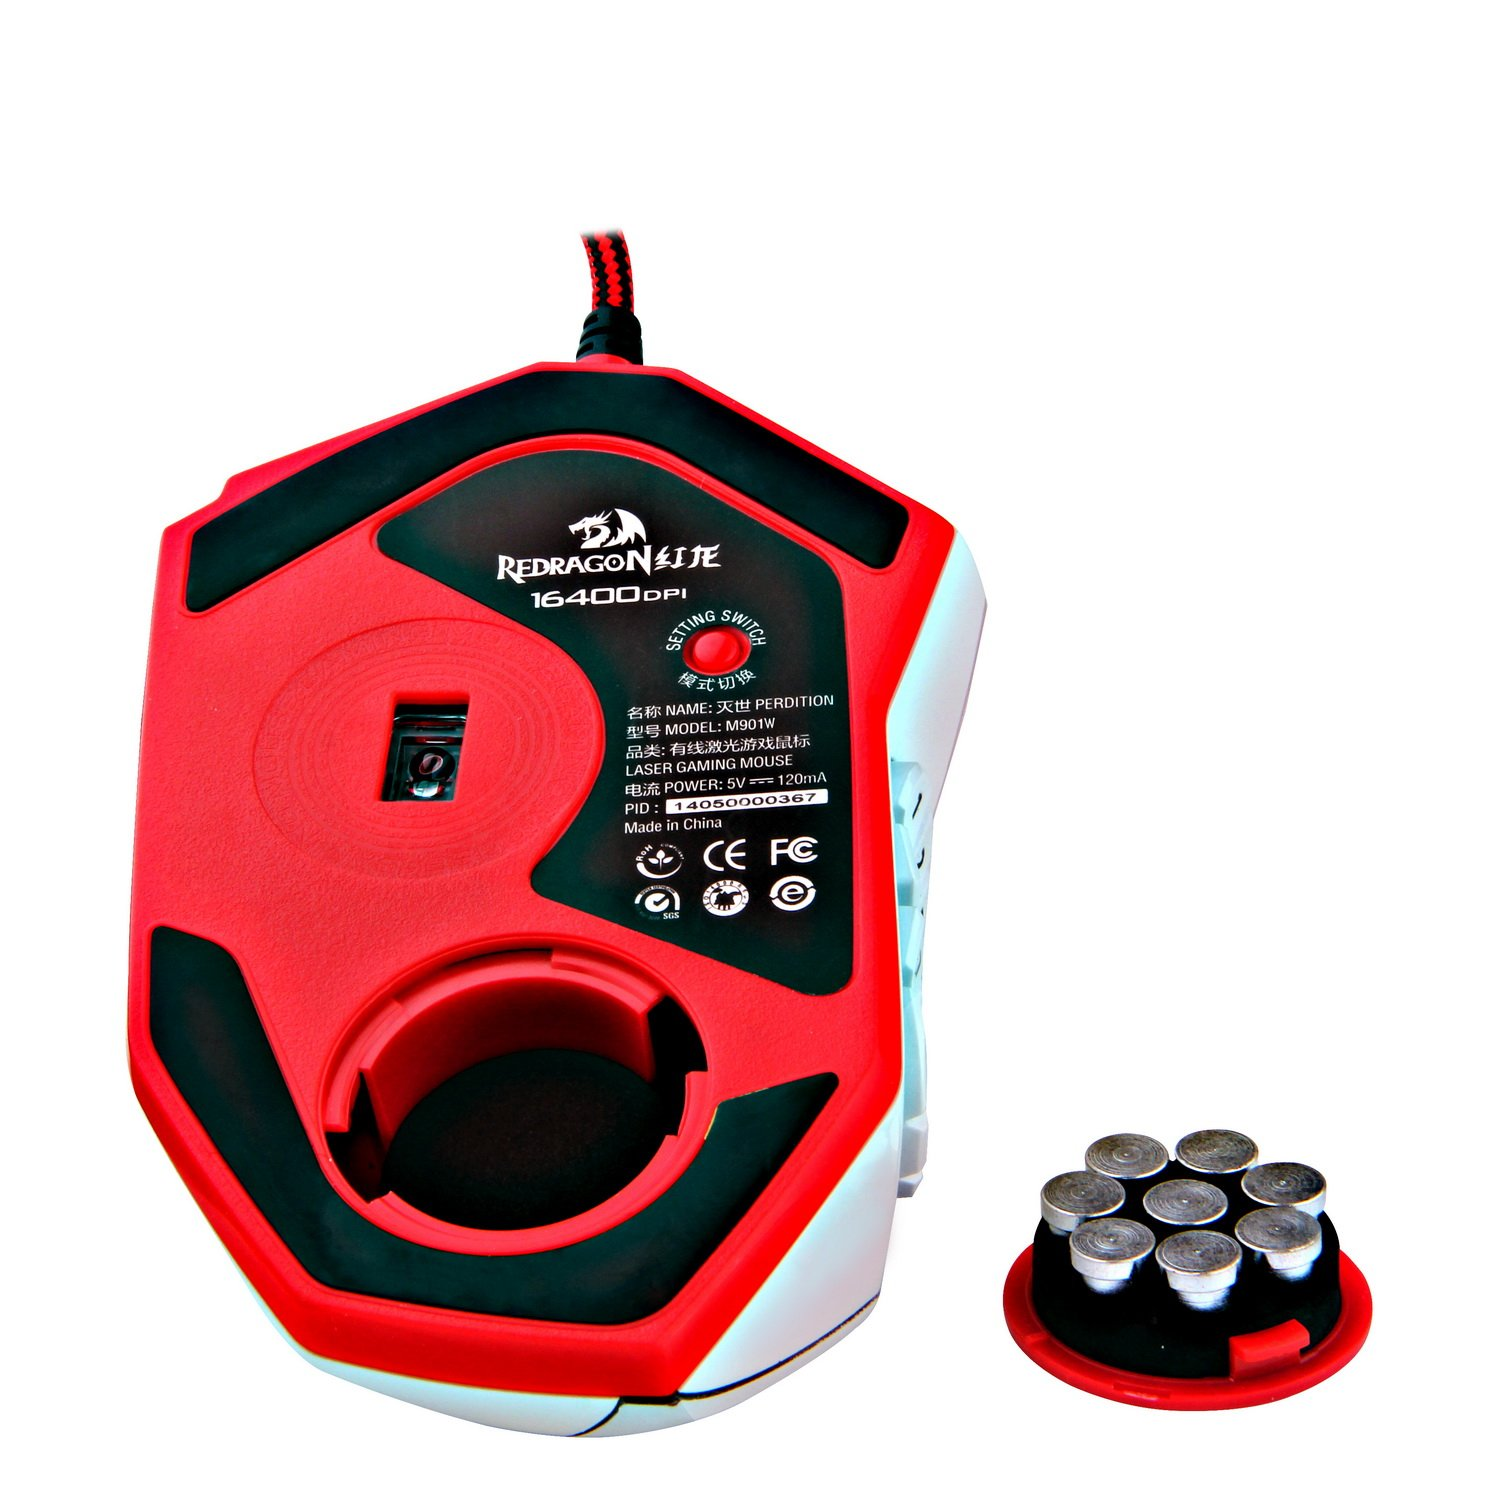 Redragon M901 PERDITION 16400 DPI Programmable Laser Gaming Mouse for PC, MMO, 18 Programmable Buttons, Weight Tuning Set, 12 Side Buttons, 5 programmable user profiles, Omron Micro Switches (White)